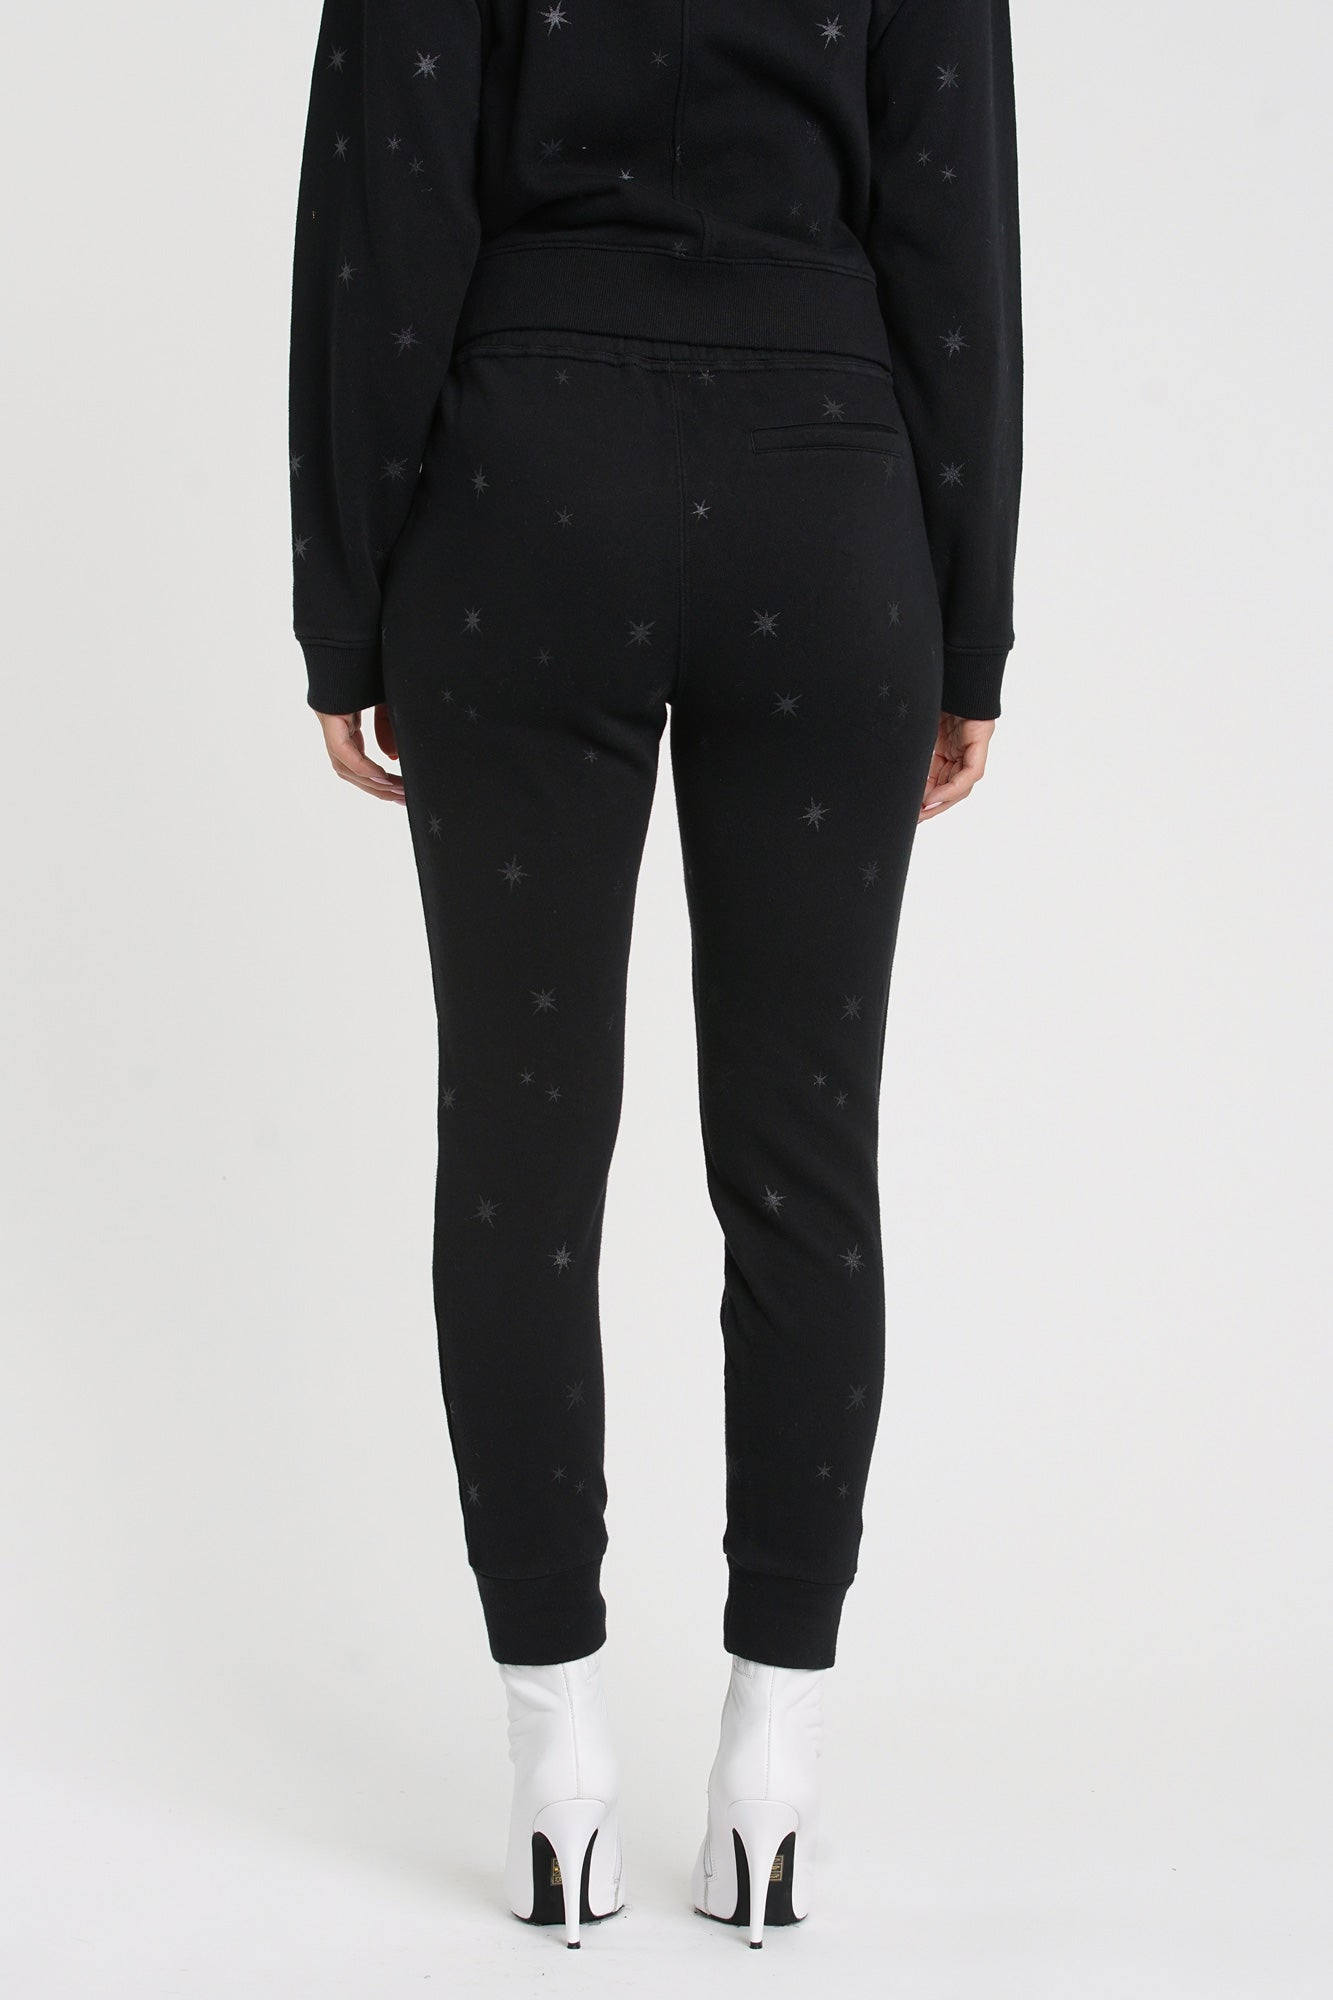 Alessa Metallic Star Print Sweatpants - Celestial Shade